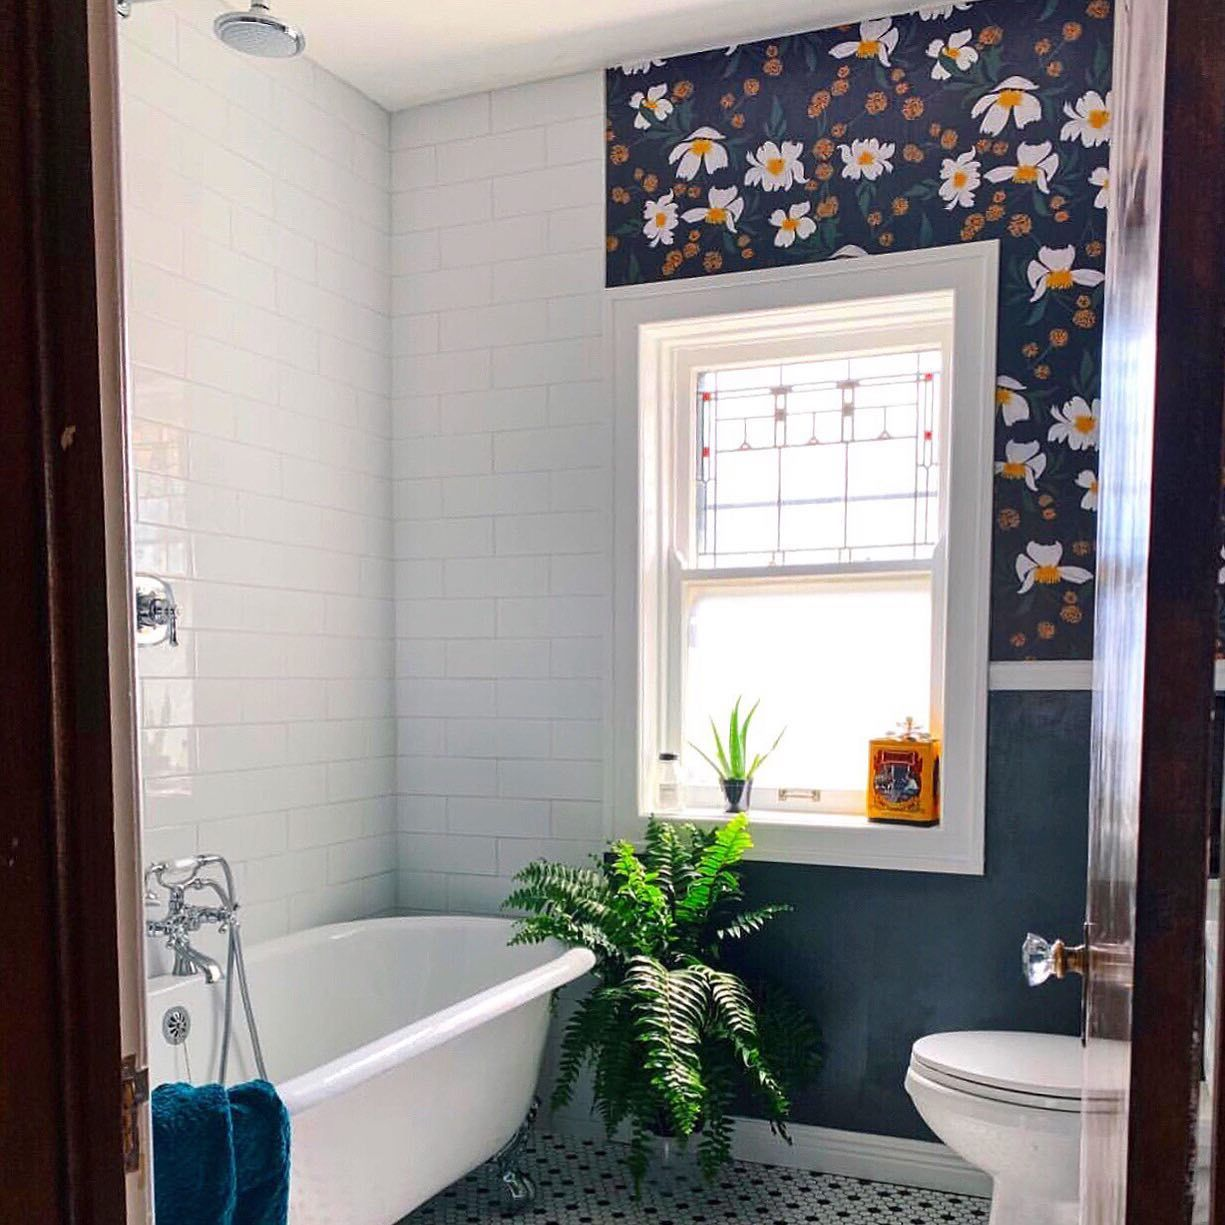 Can I Put Wallpaper In A Bathroom We Get This Question A Lot So We Created A Blog Post Addressi In 2020 Bathroom Decor Removable Wallpaper Bathroom Wallpaper